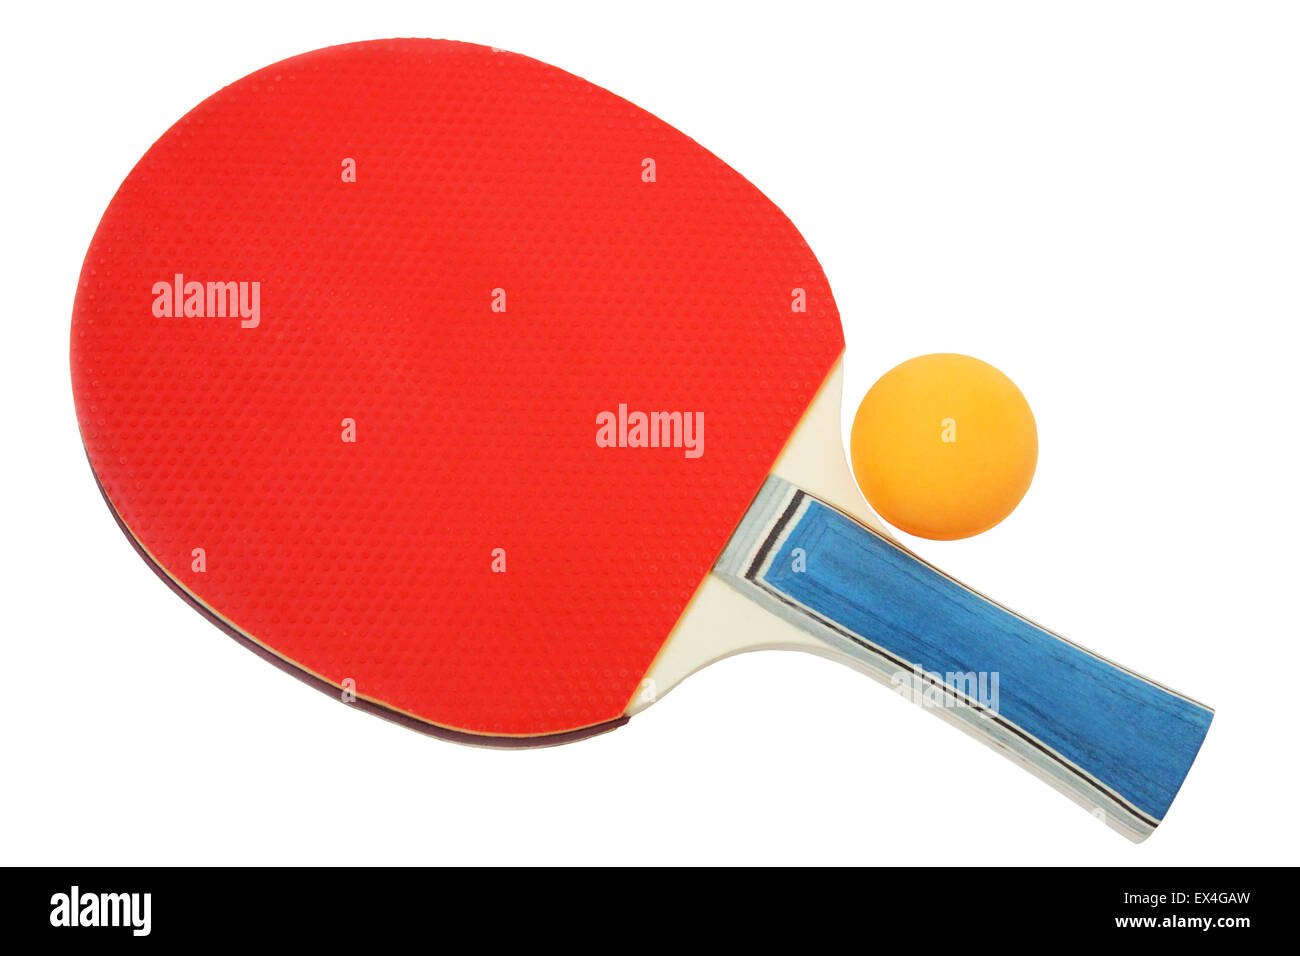 Red  tennis racket and orange ball for ping-pong isolated on a white background. - Stock Image